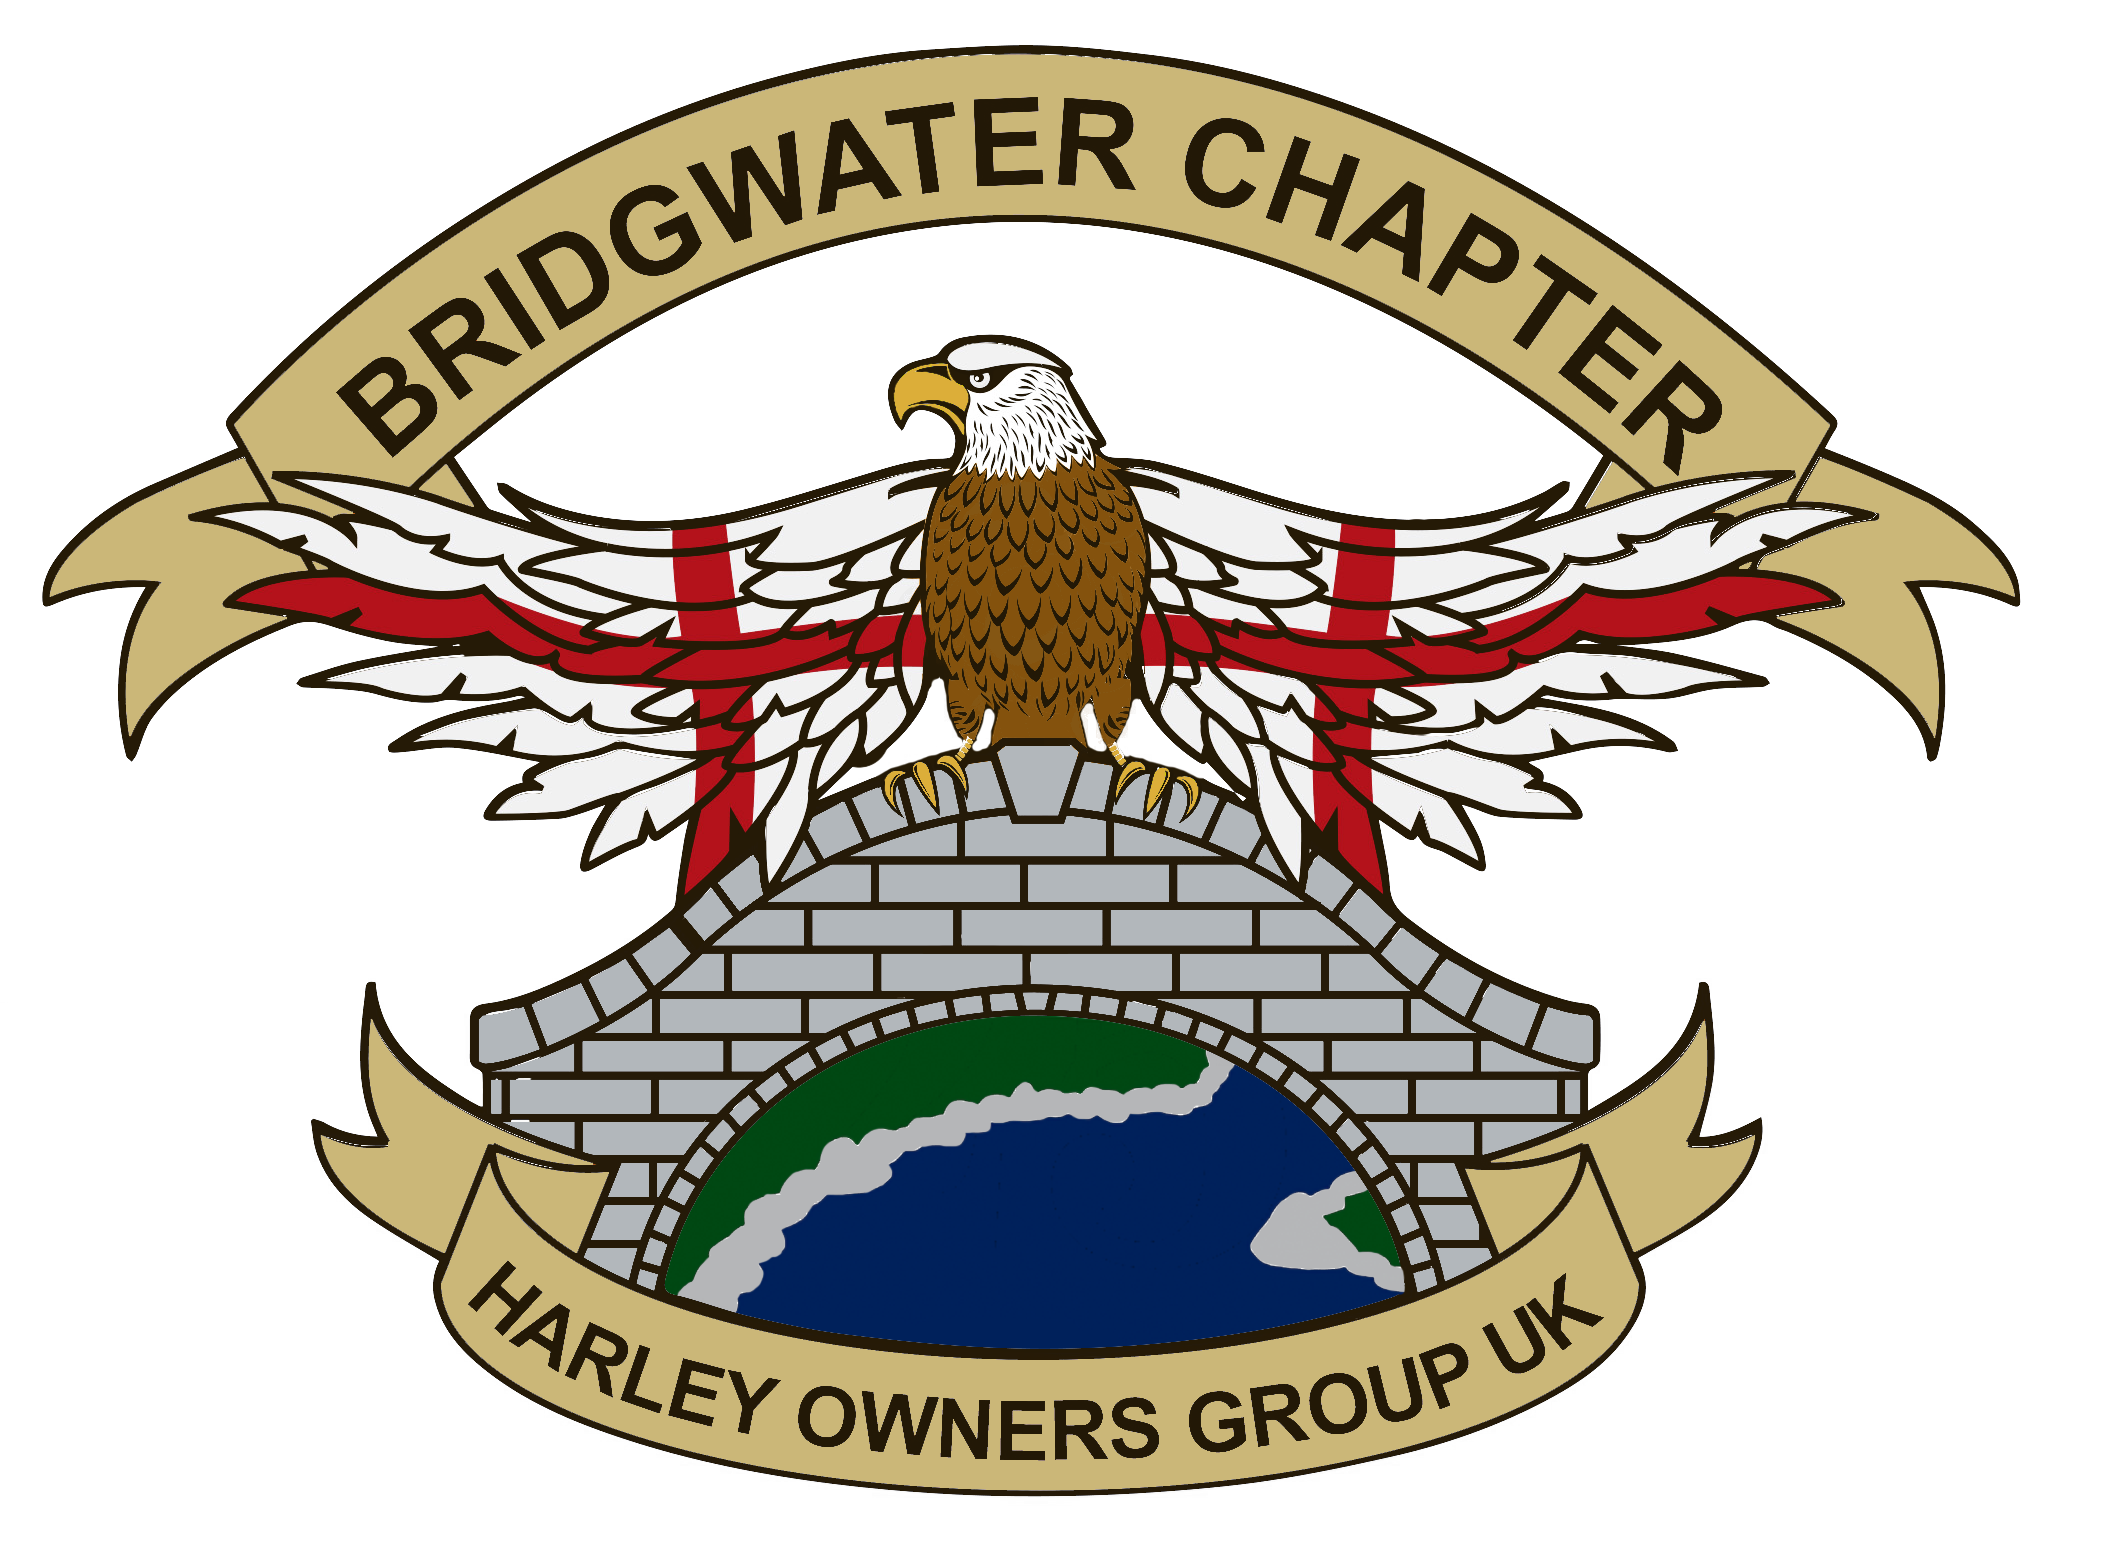 Bridgewater Chapter Best Logo with clear background - 12.10.14 (1)